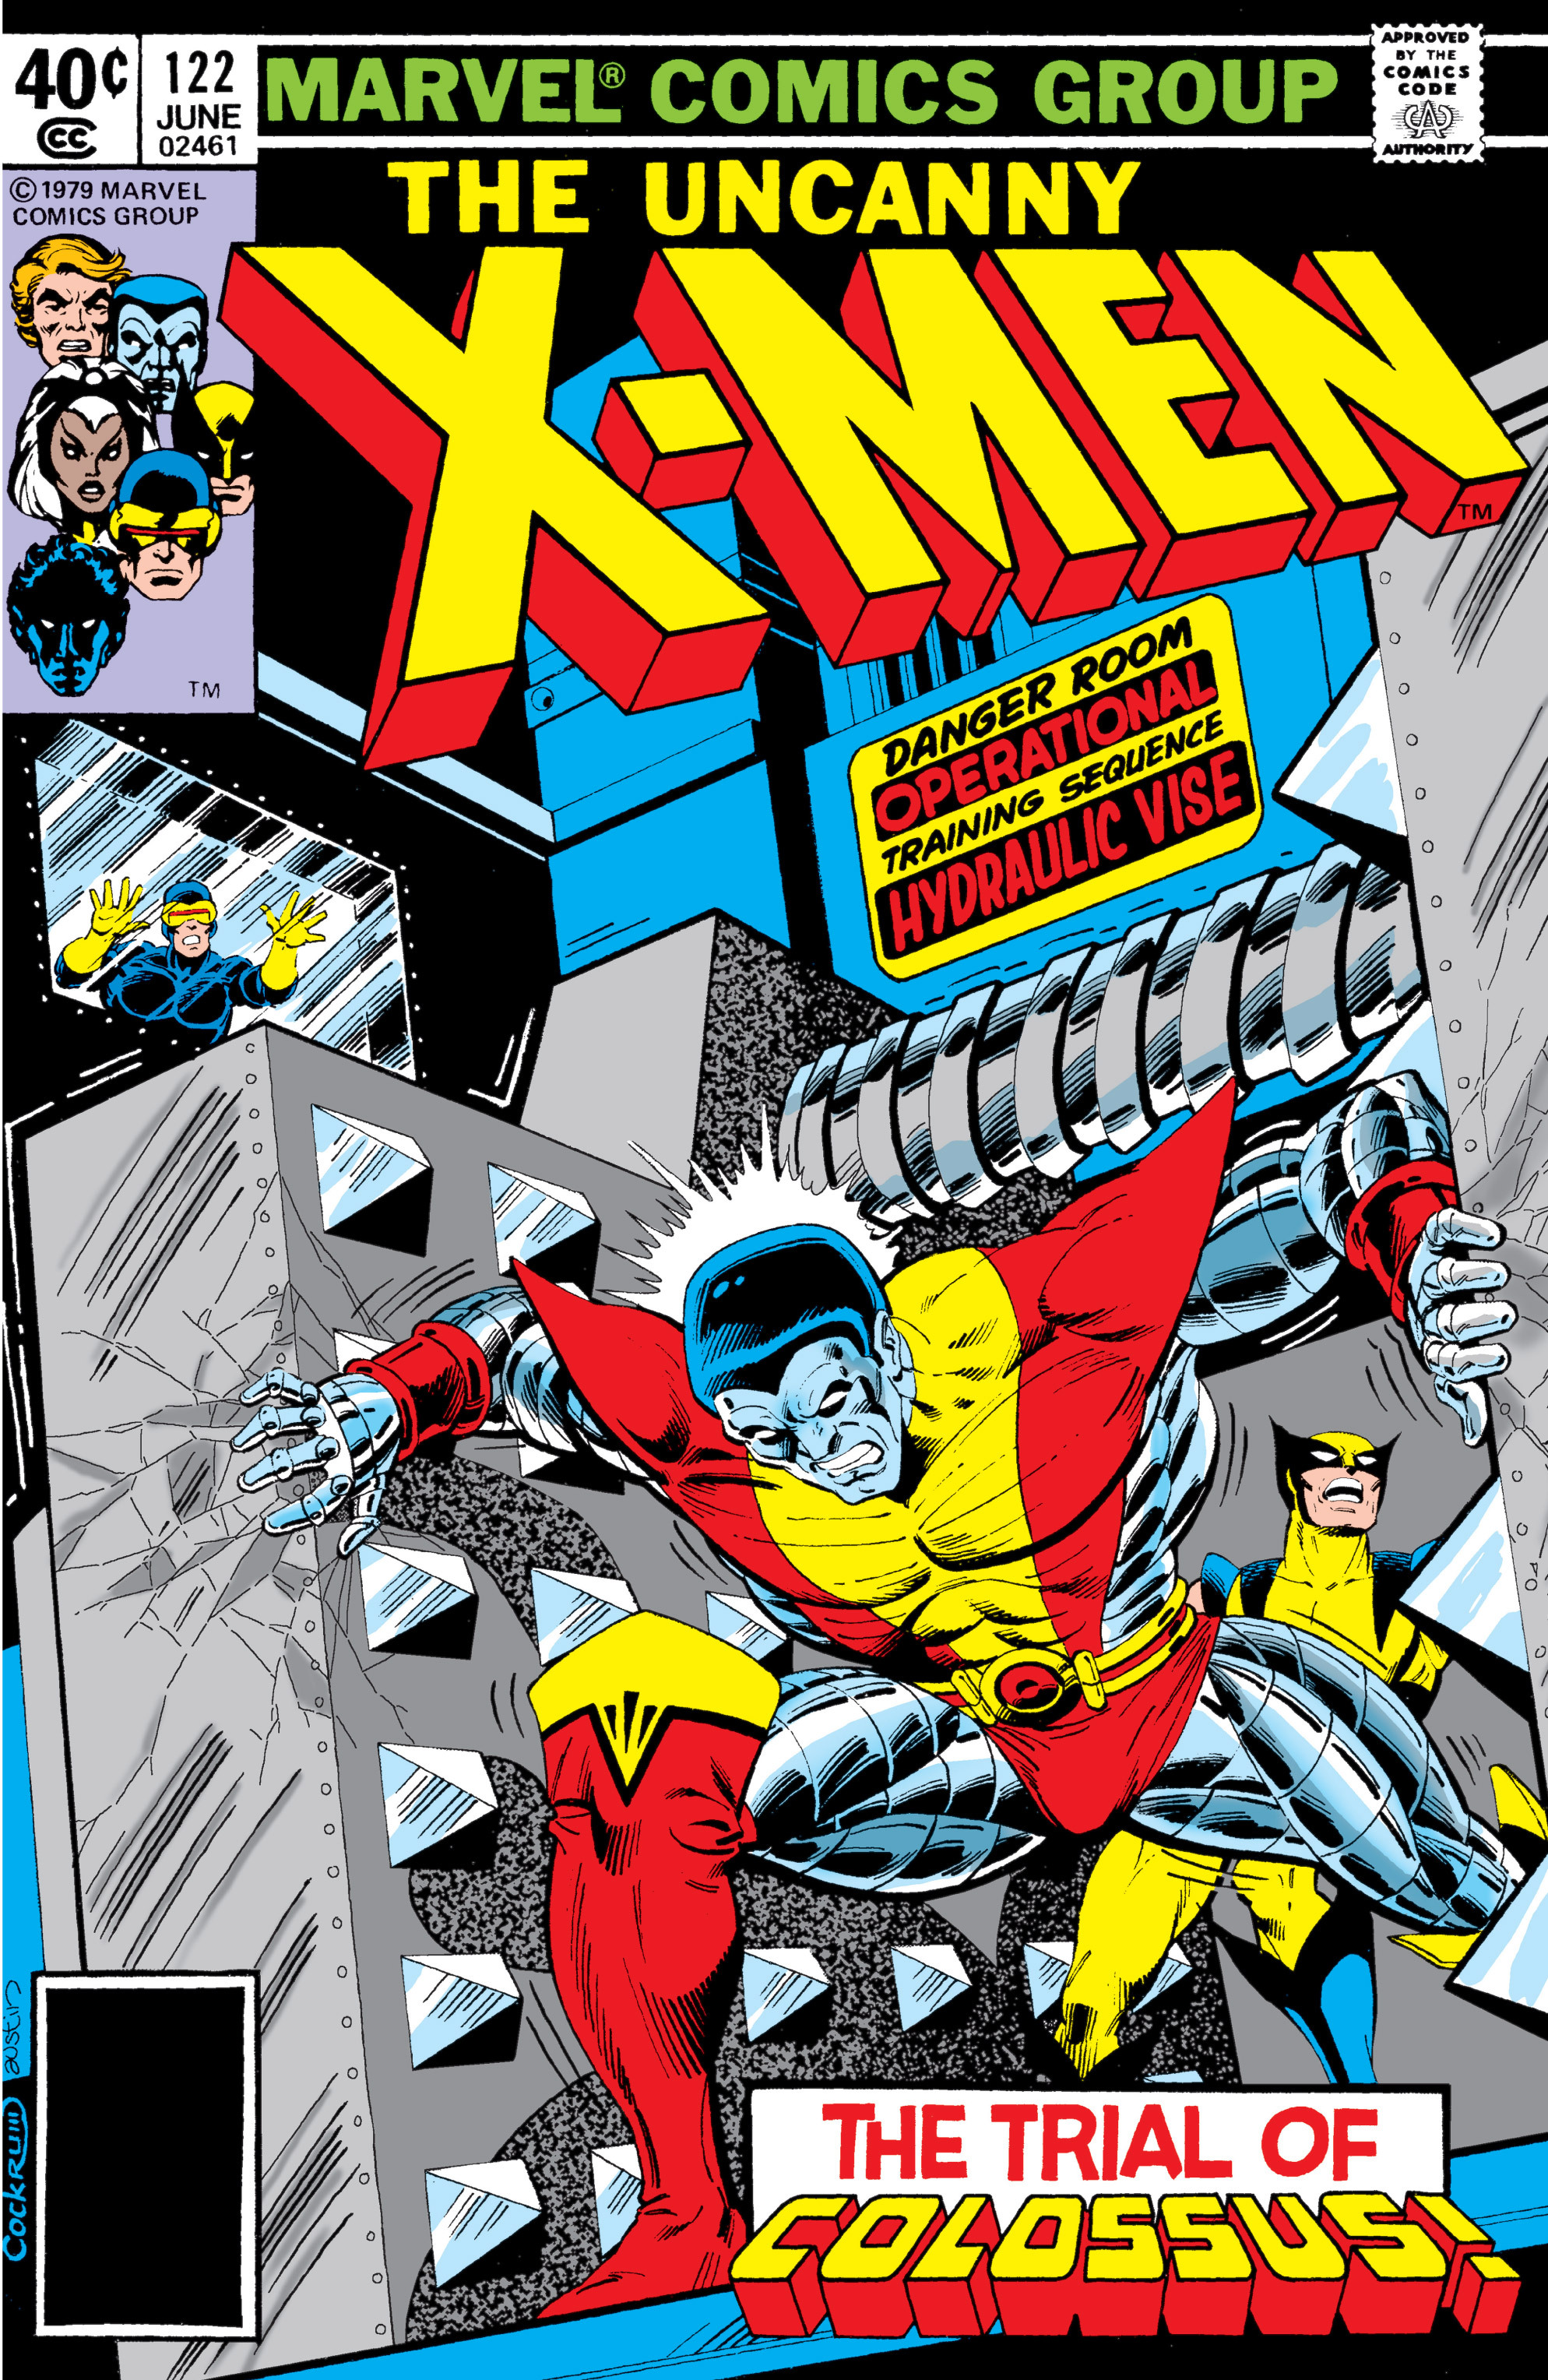 Read online Uncanny X-Men (1963) comic -  Issue #122 - 1